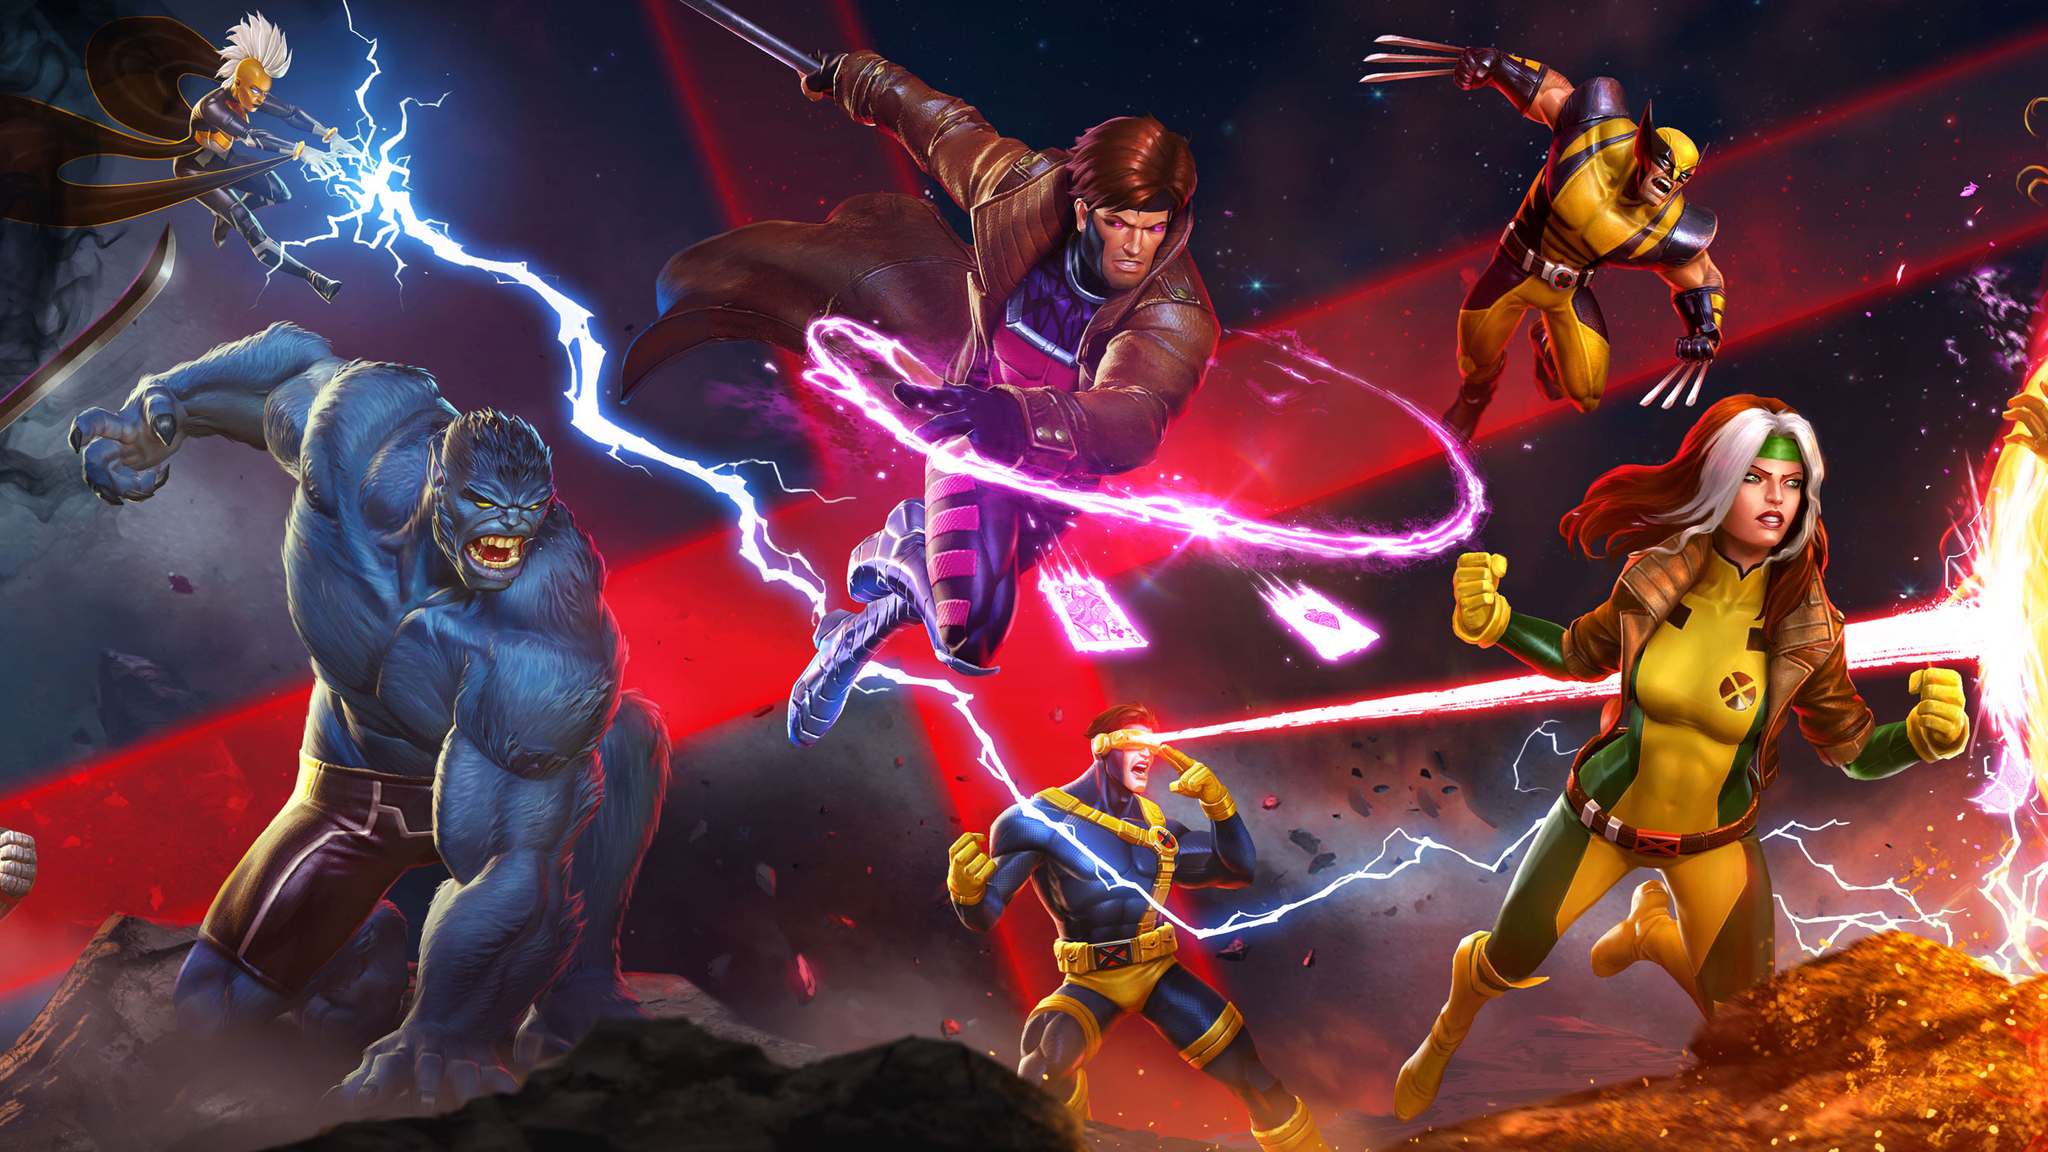 Marvel Superheroes 3d Wallpapers 2048x1152 Marvel Contest Of Champions 2048x1152 Resolution